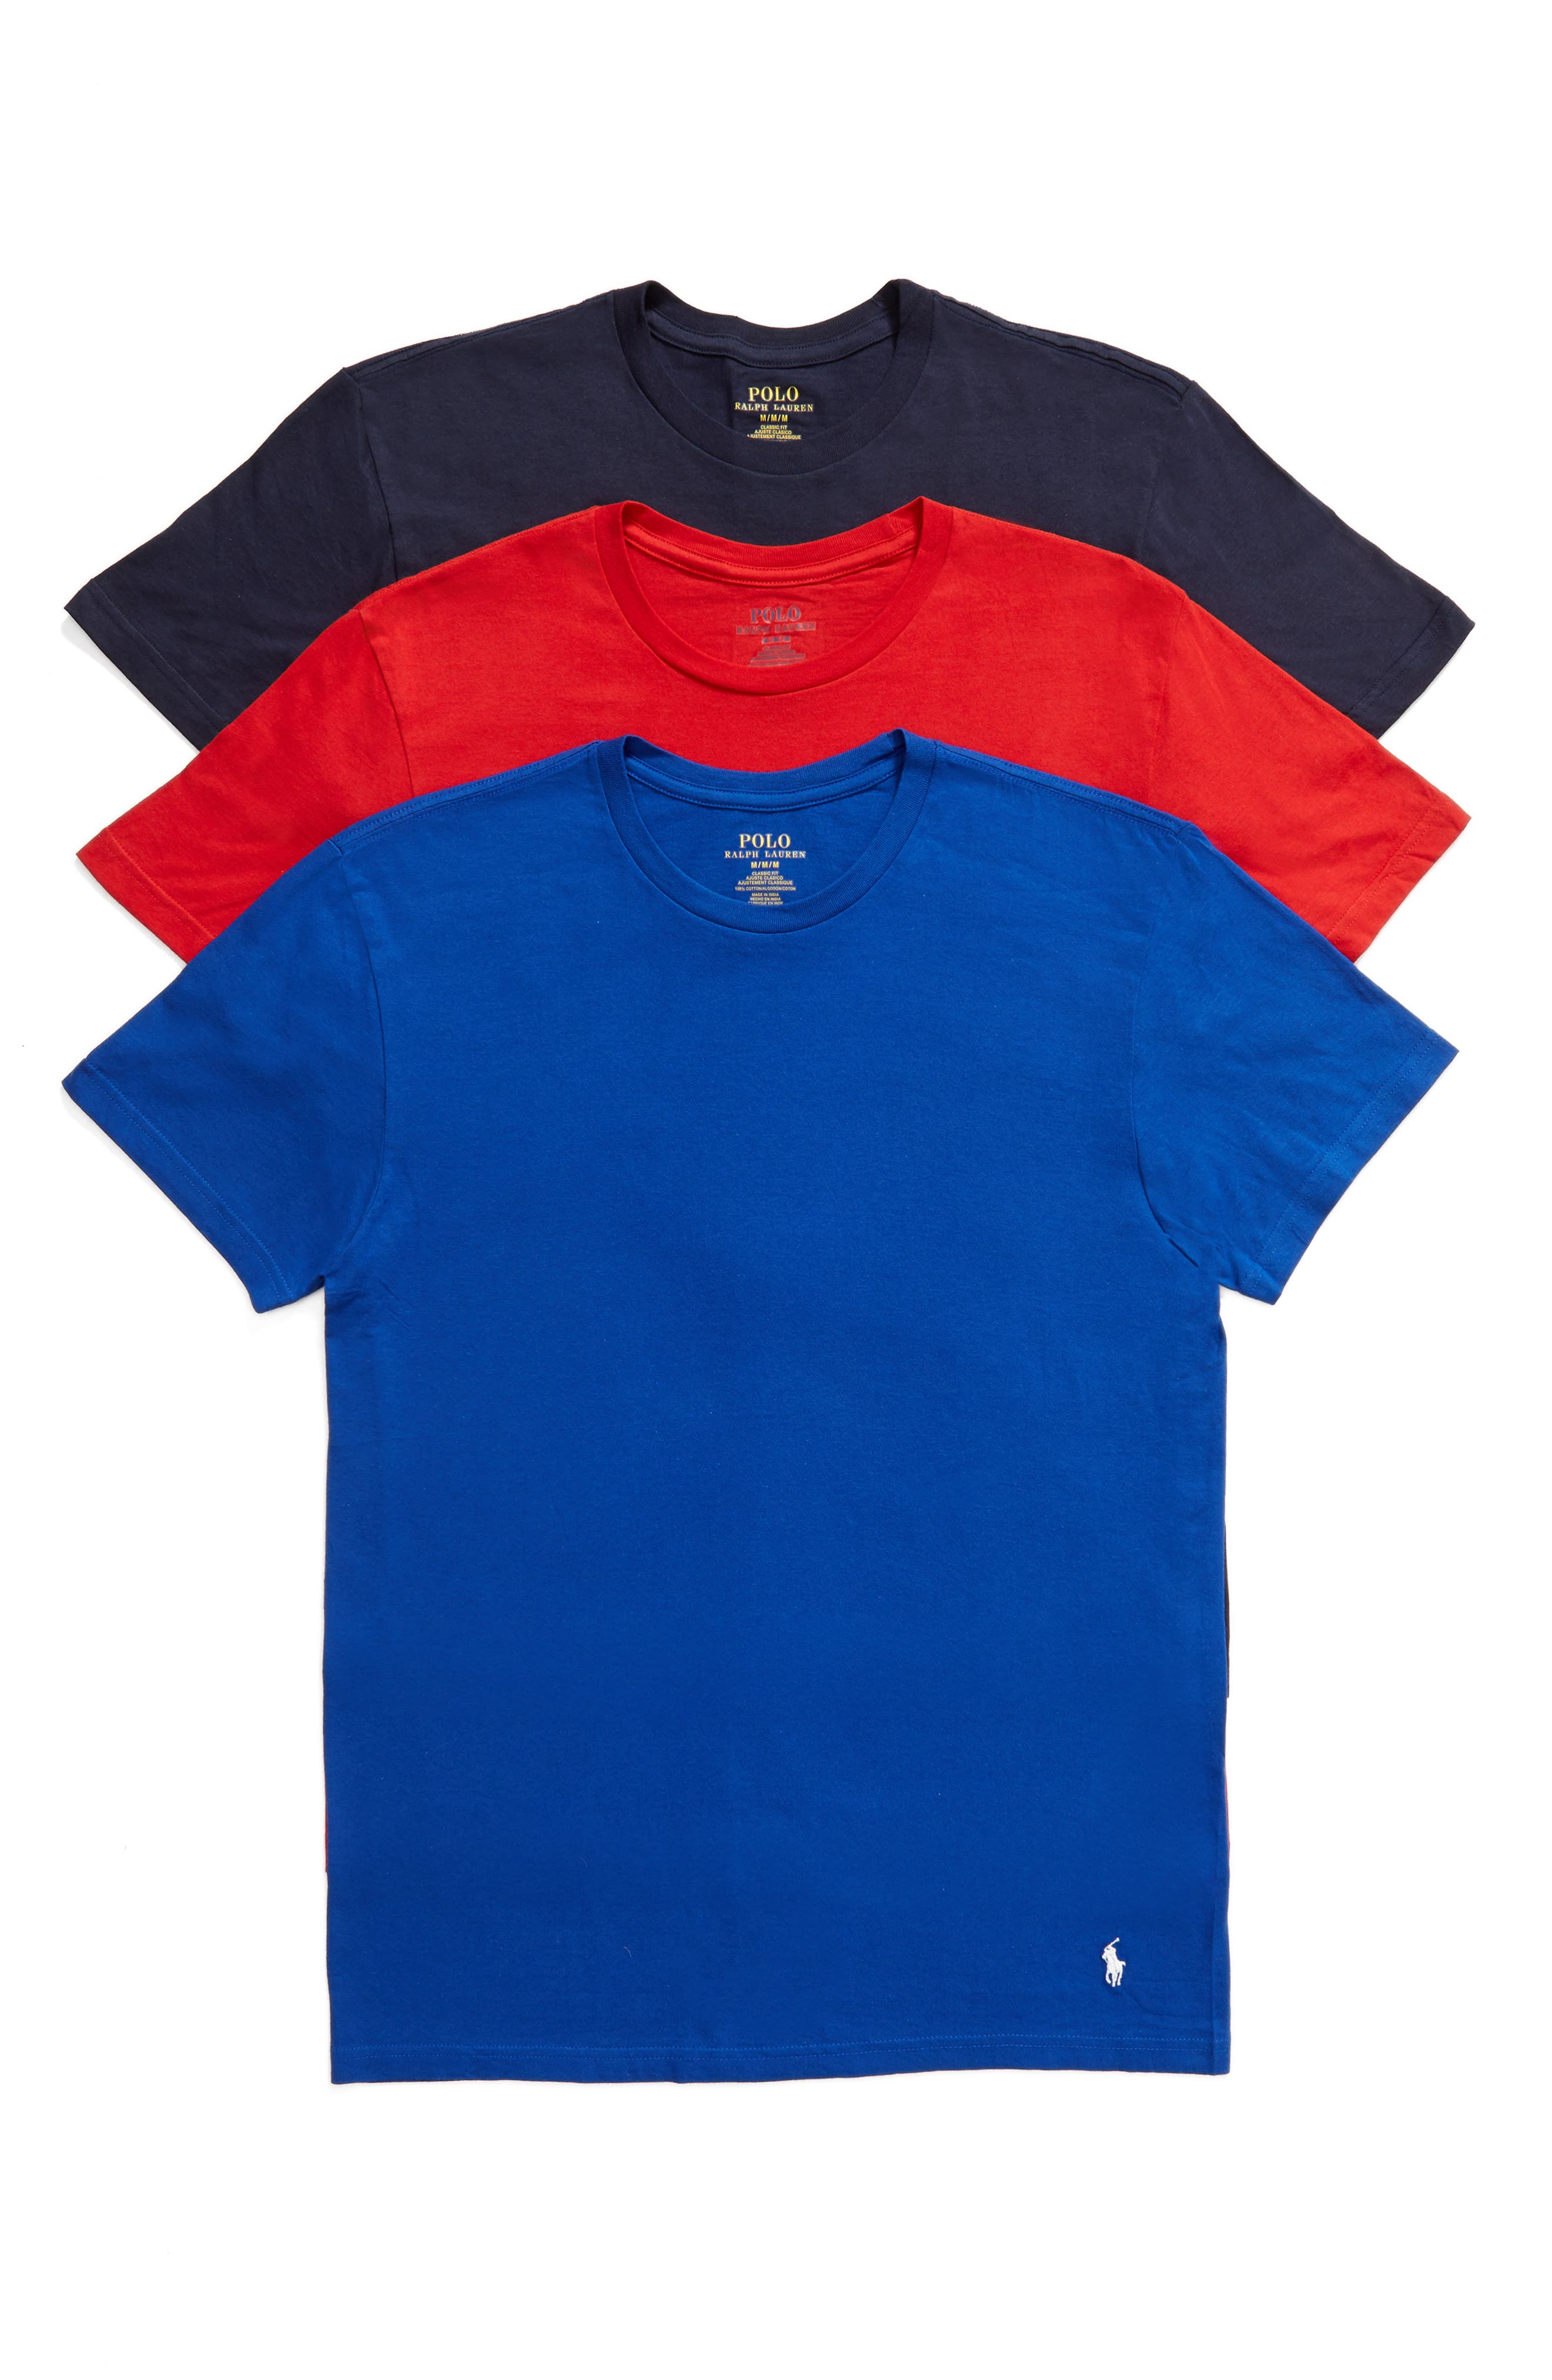 e171cb872 Sale  Men s Polo Ralph Lauren Clothing